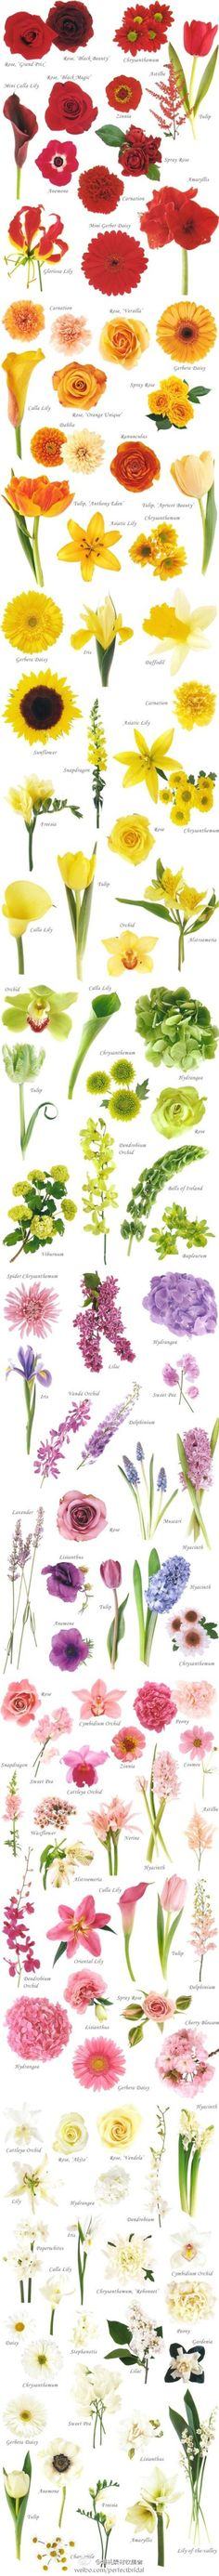 Get to know your wedding flowers!!!!